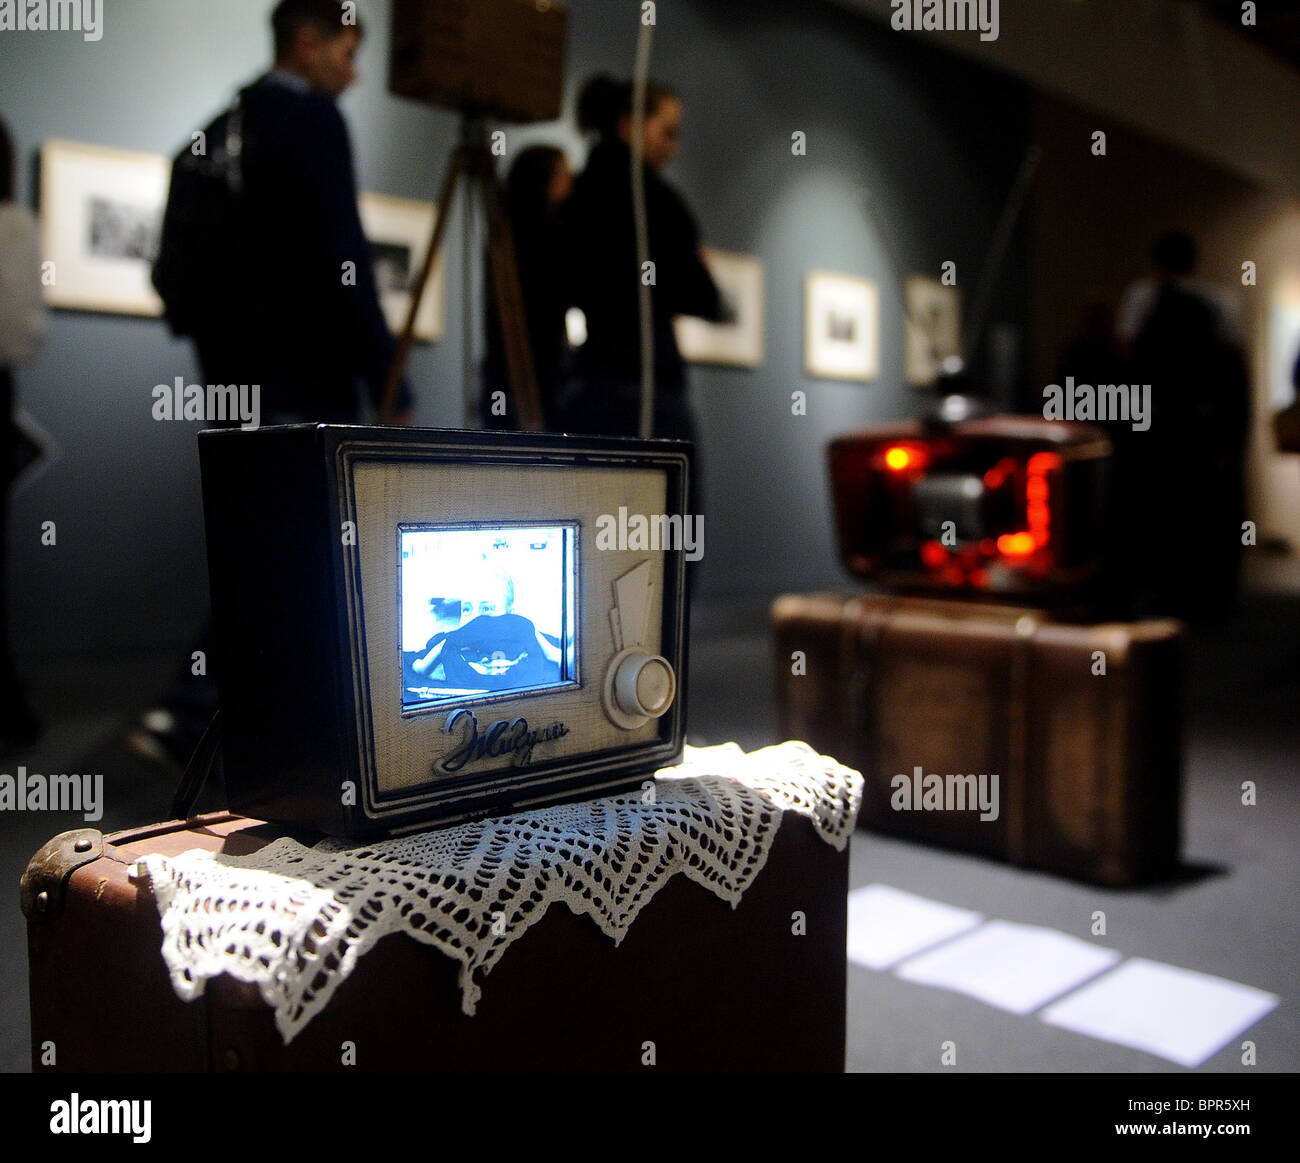 Kandinsky Prize nominees exhibit their entries at Moscow's Central House of Artist - Stock Image